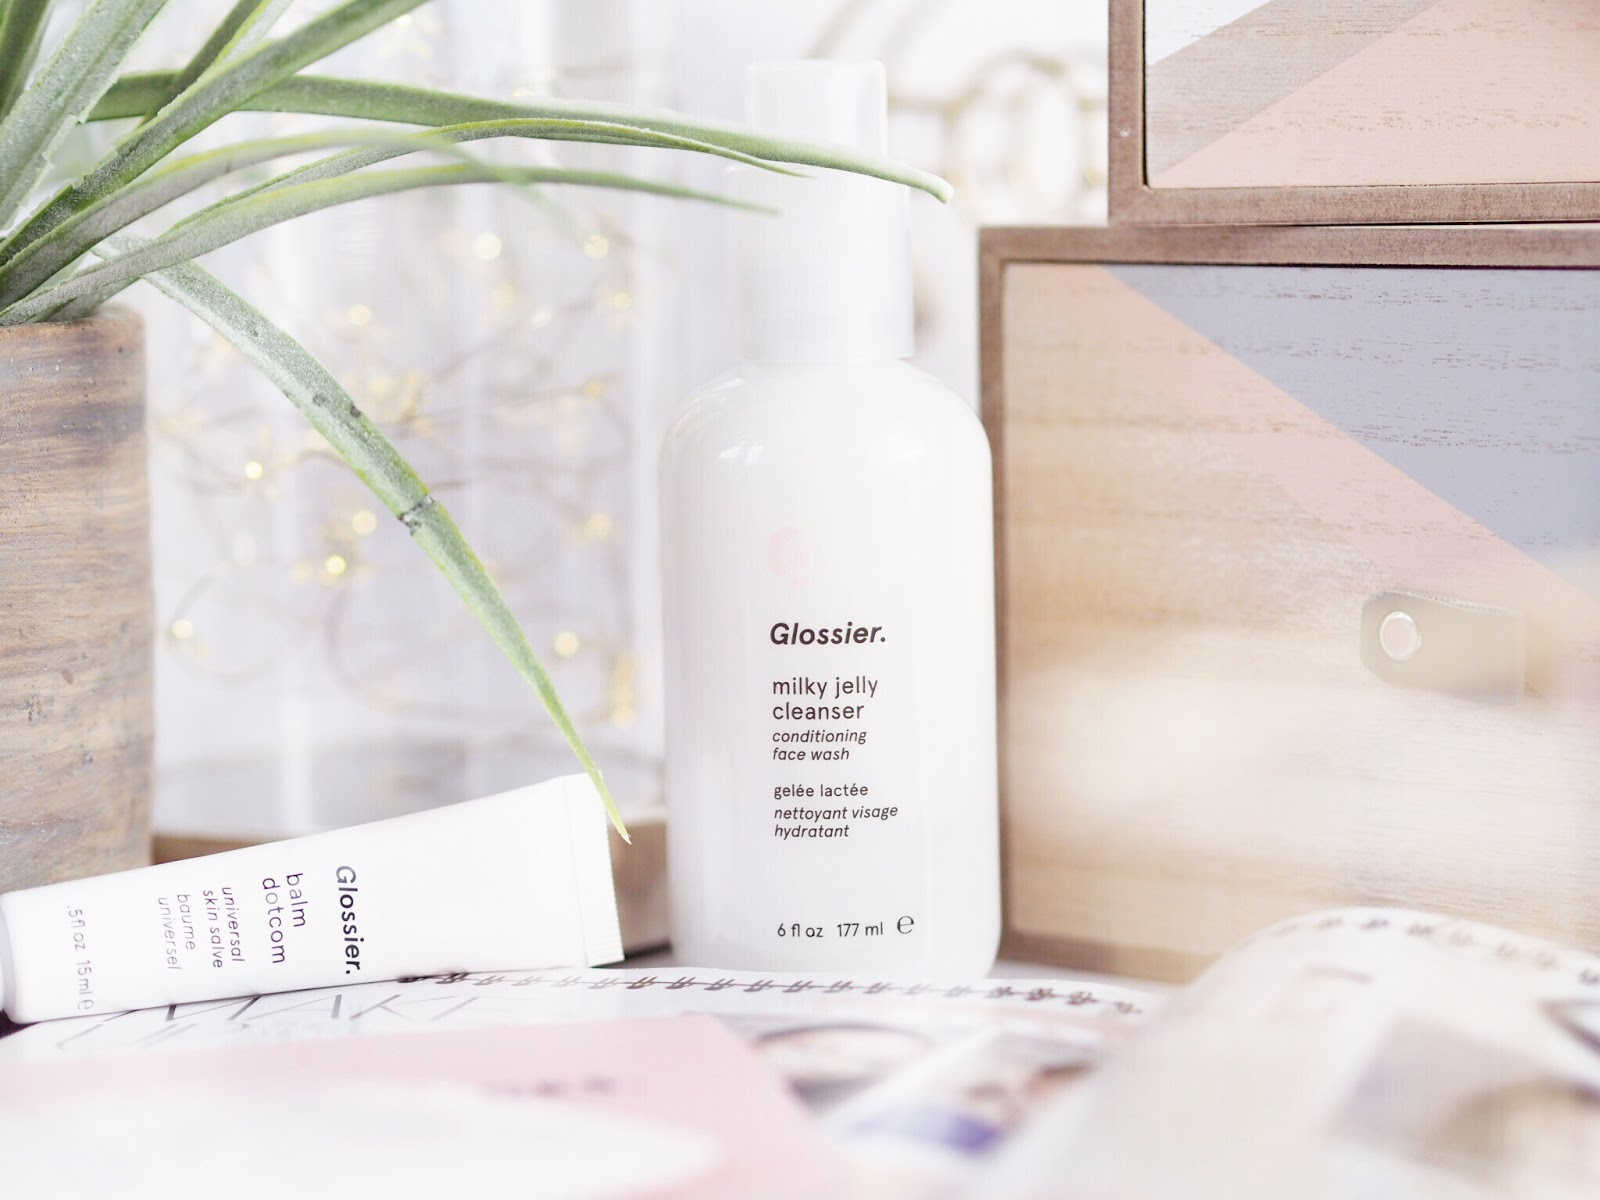 Glossier Milky Jelly Cleanser review, Glossier review, cleanser, jelly cleanser, milky jelly cleanser